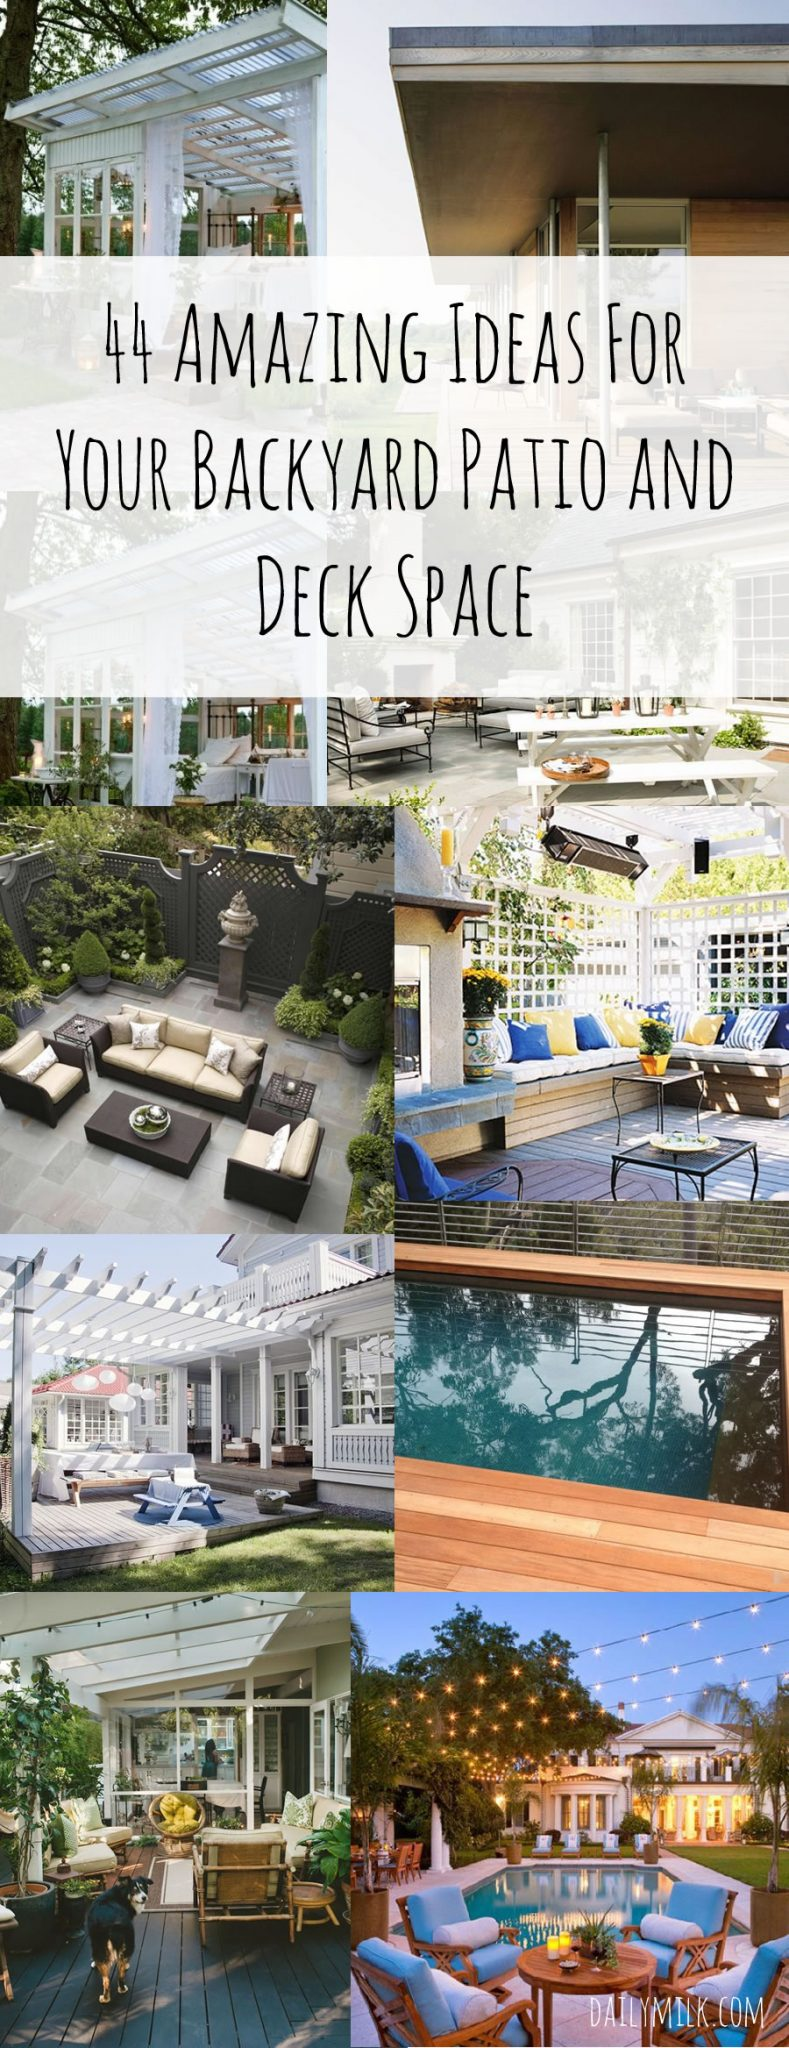 44-deck-patio-ideas-backyard-dailymilk-inspiration